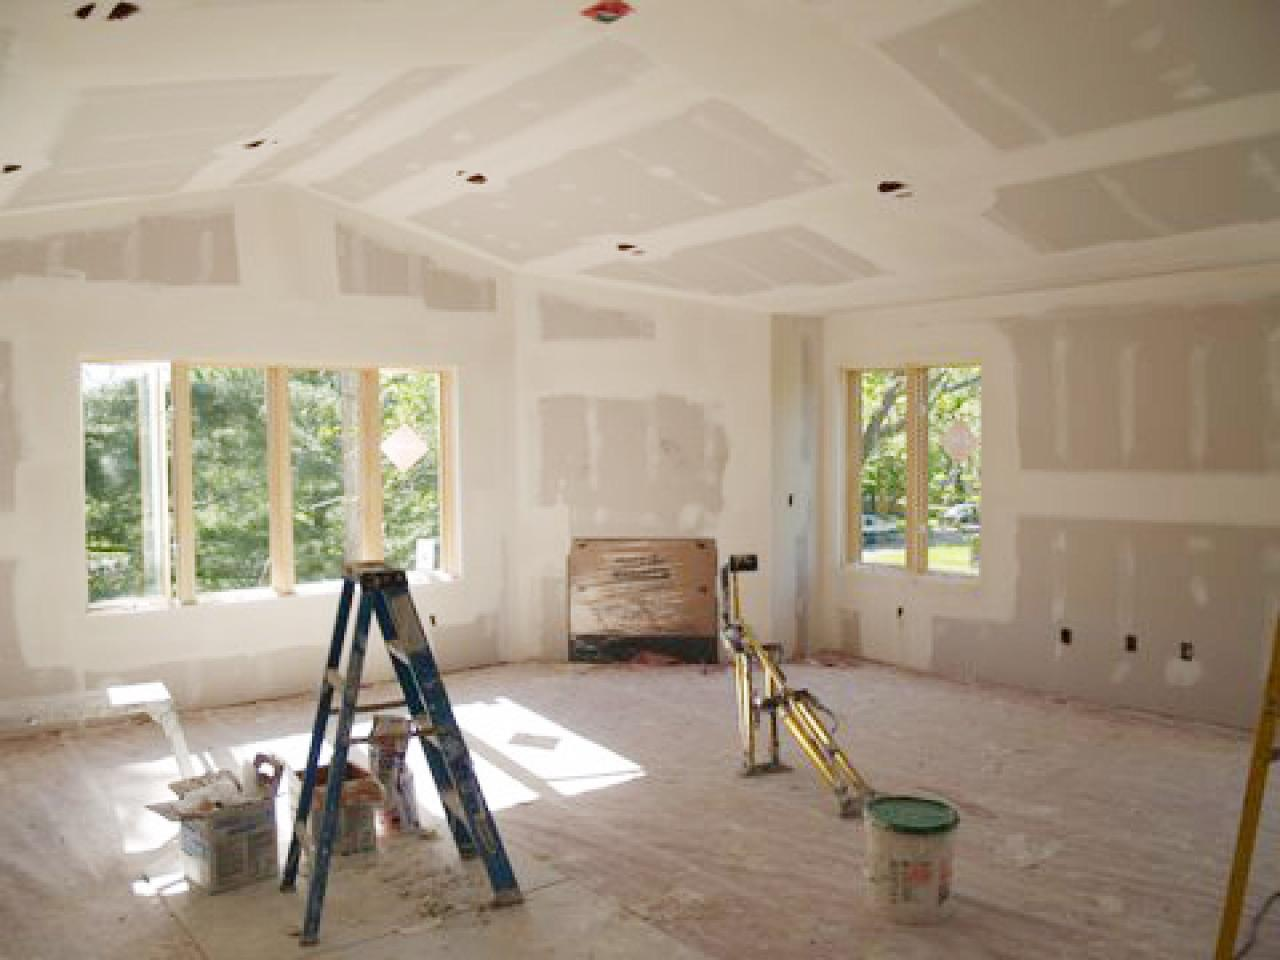 How to survive a home addition hgtv for Home expansion ideas